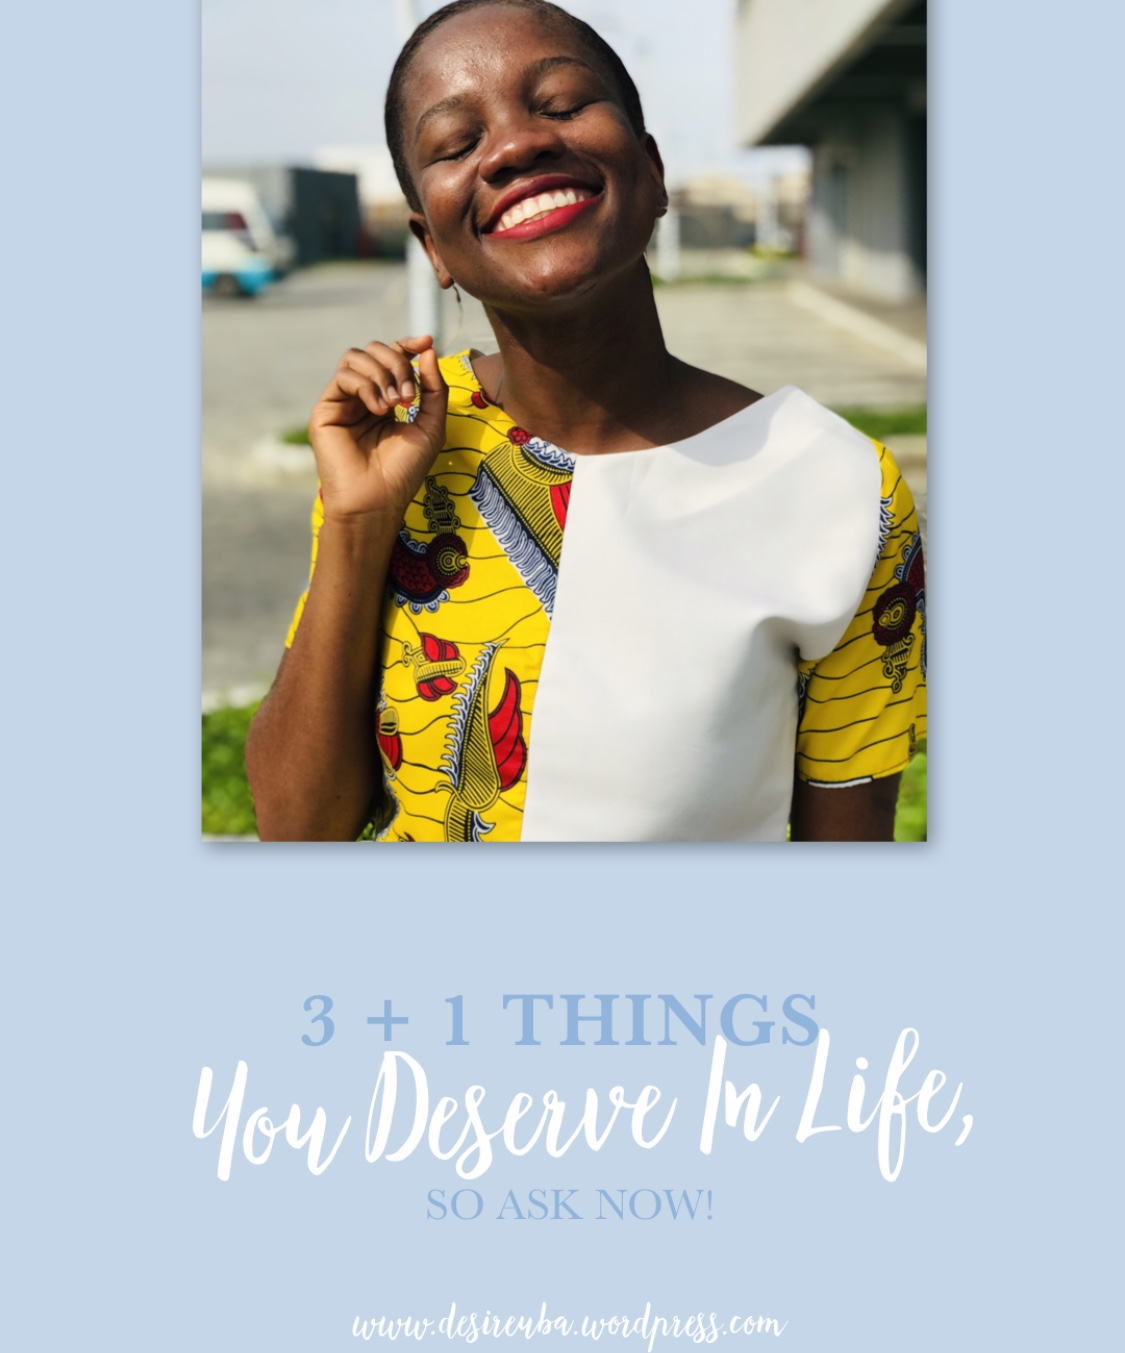 3 + 1 THINGS YOU DESERVE IN LIFE, SO ASK NOW!